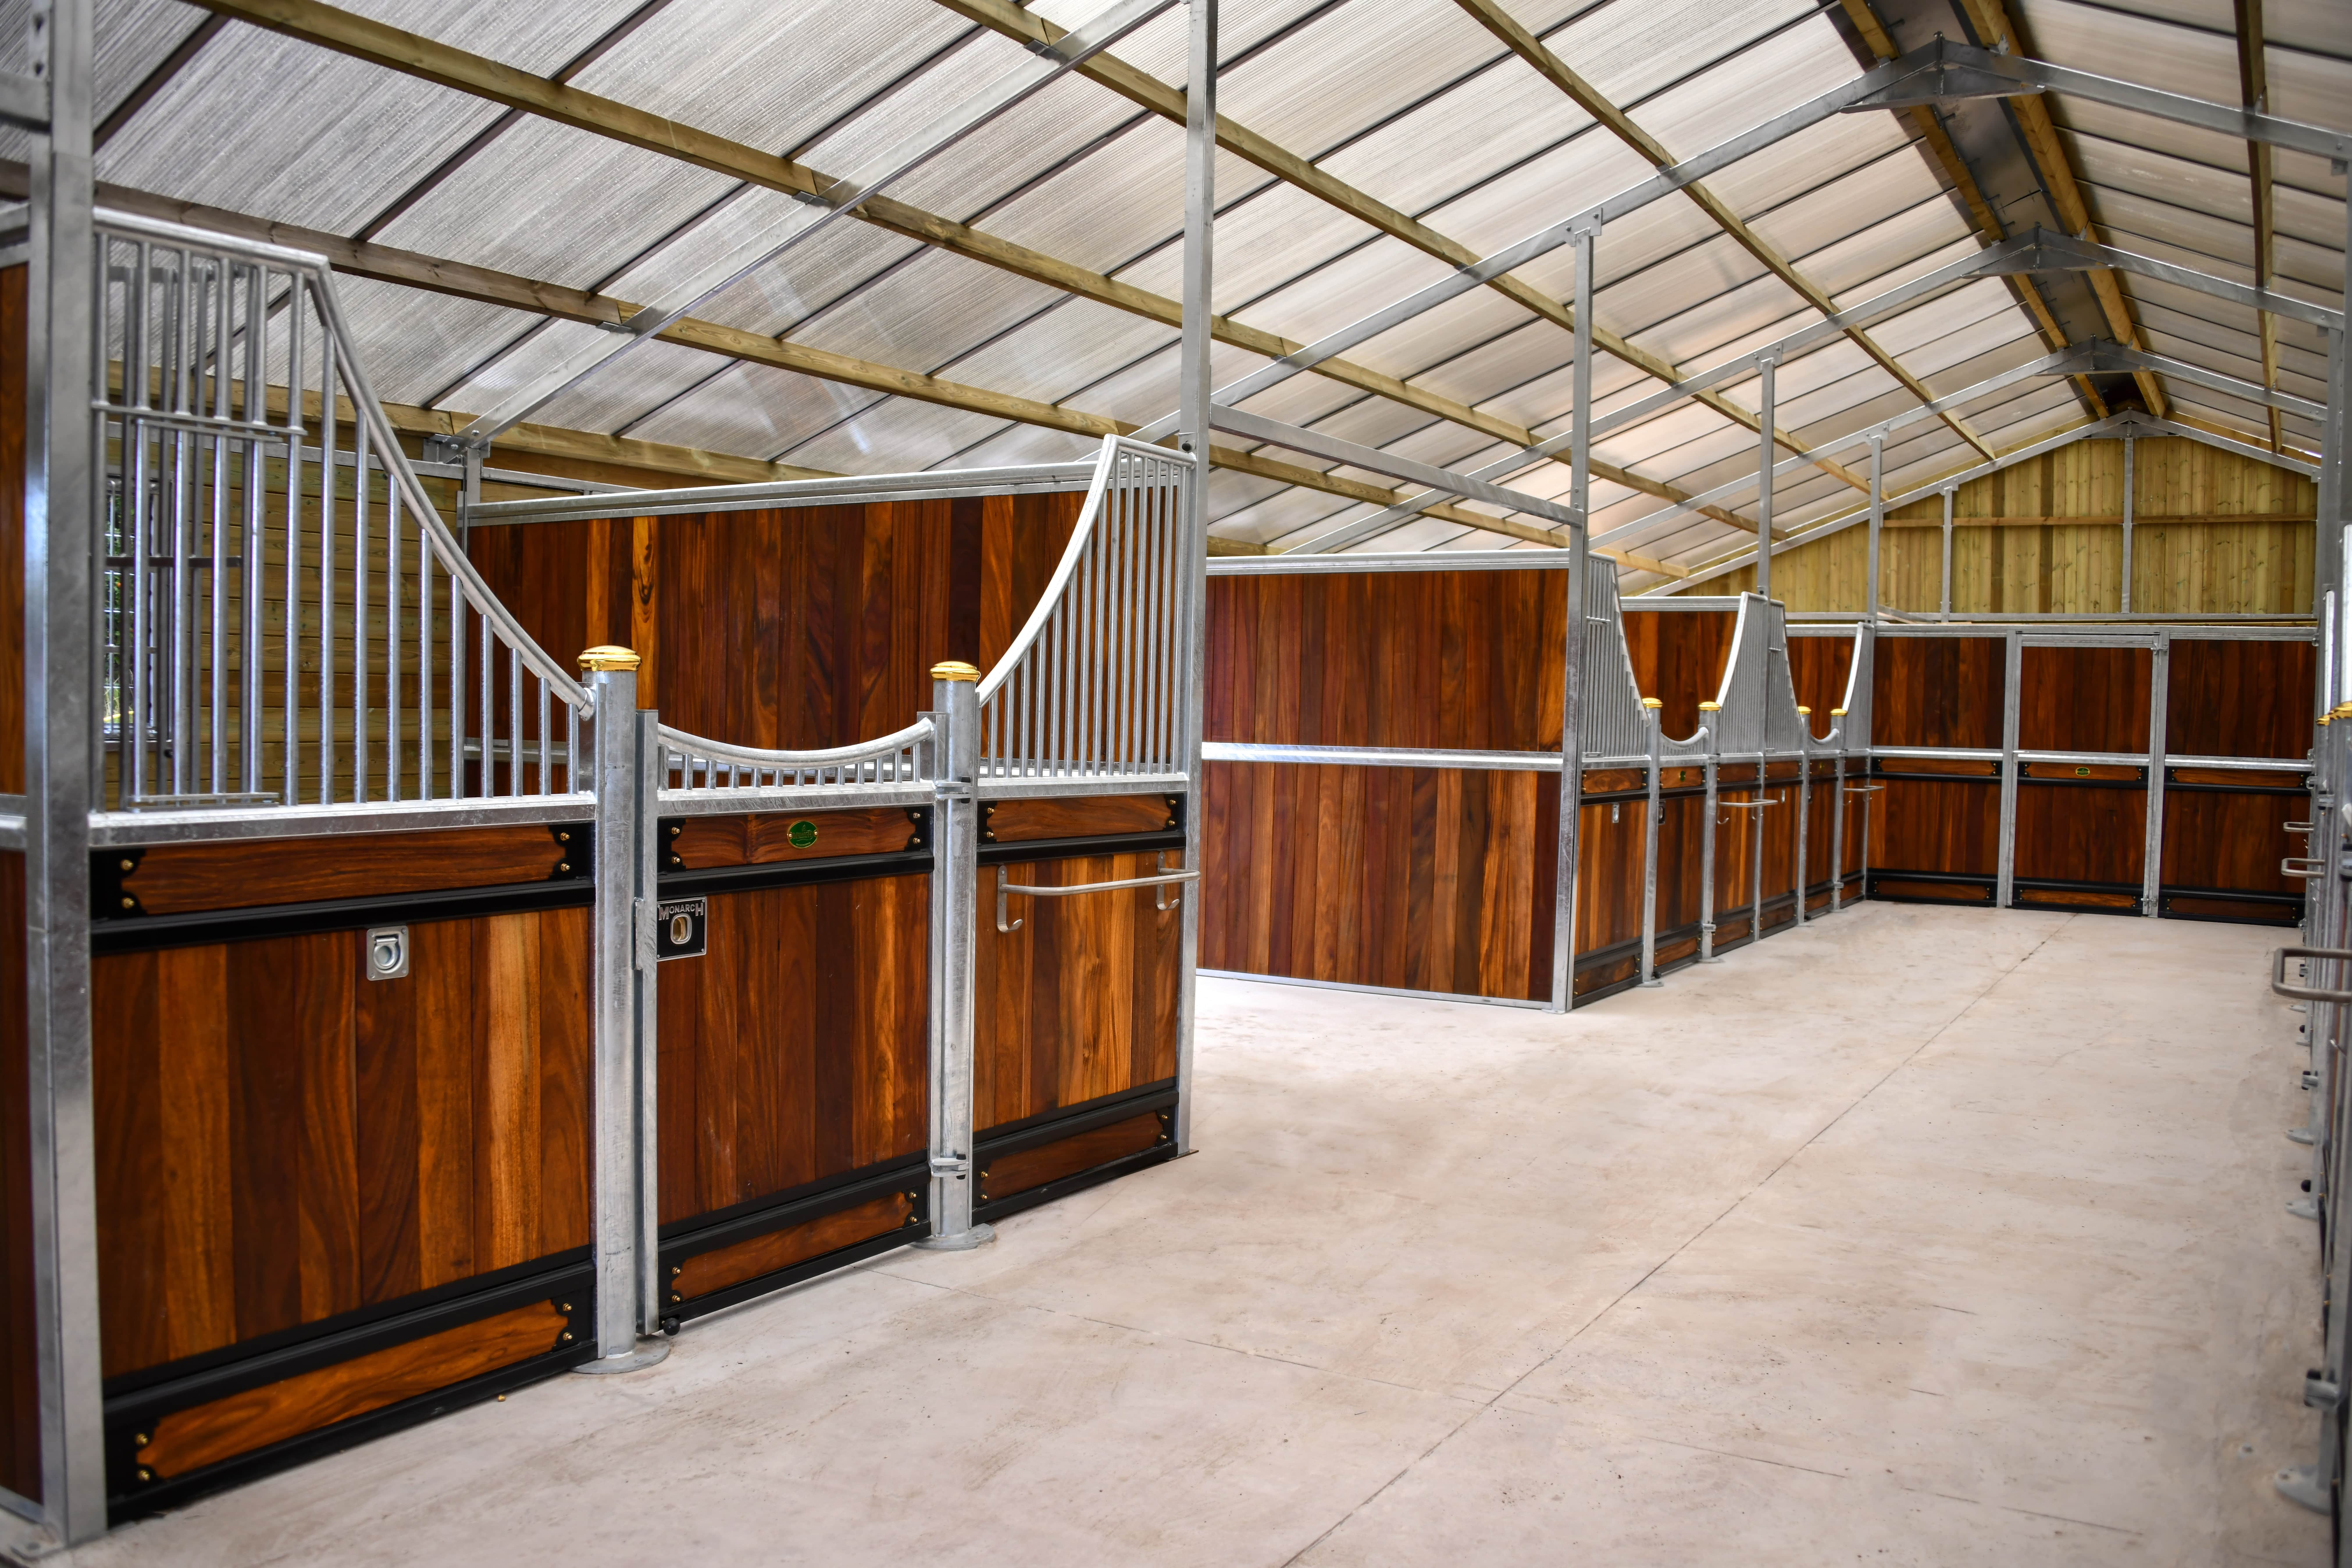 Standard Size Majestic Victorian Hardwood Stables Inside a Monarch Barn